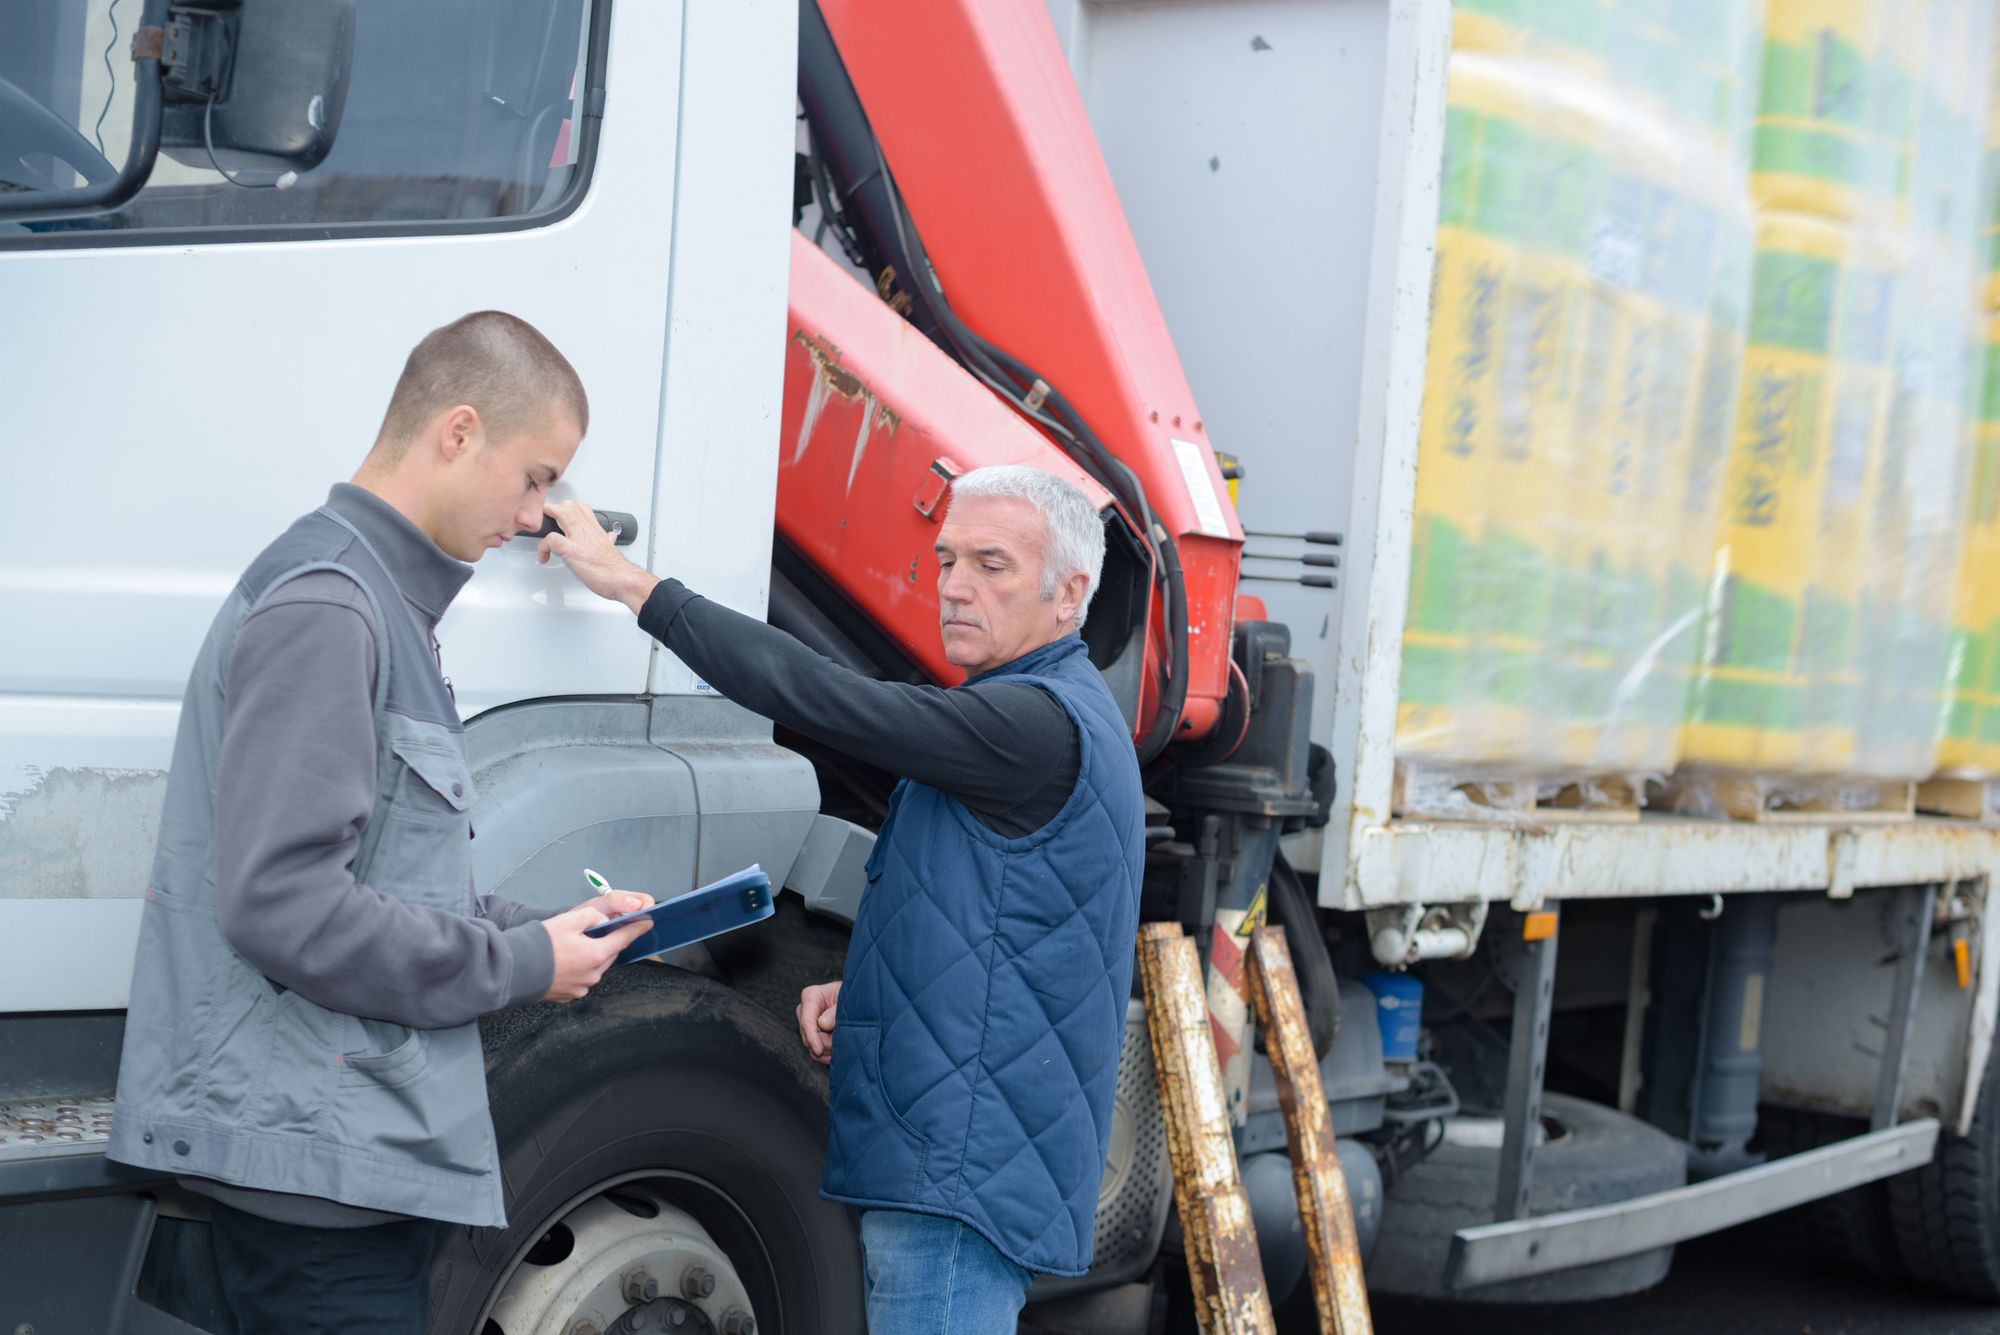 Driver getting his rig inspected